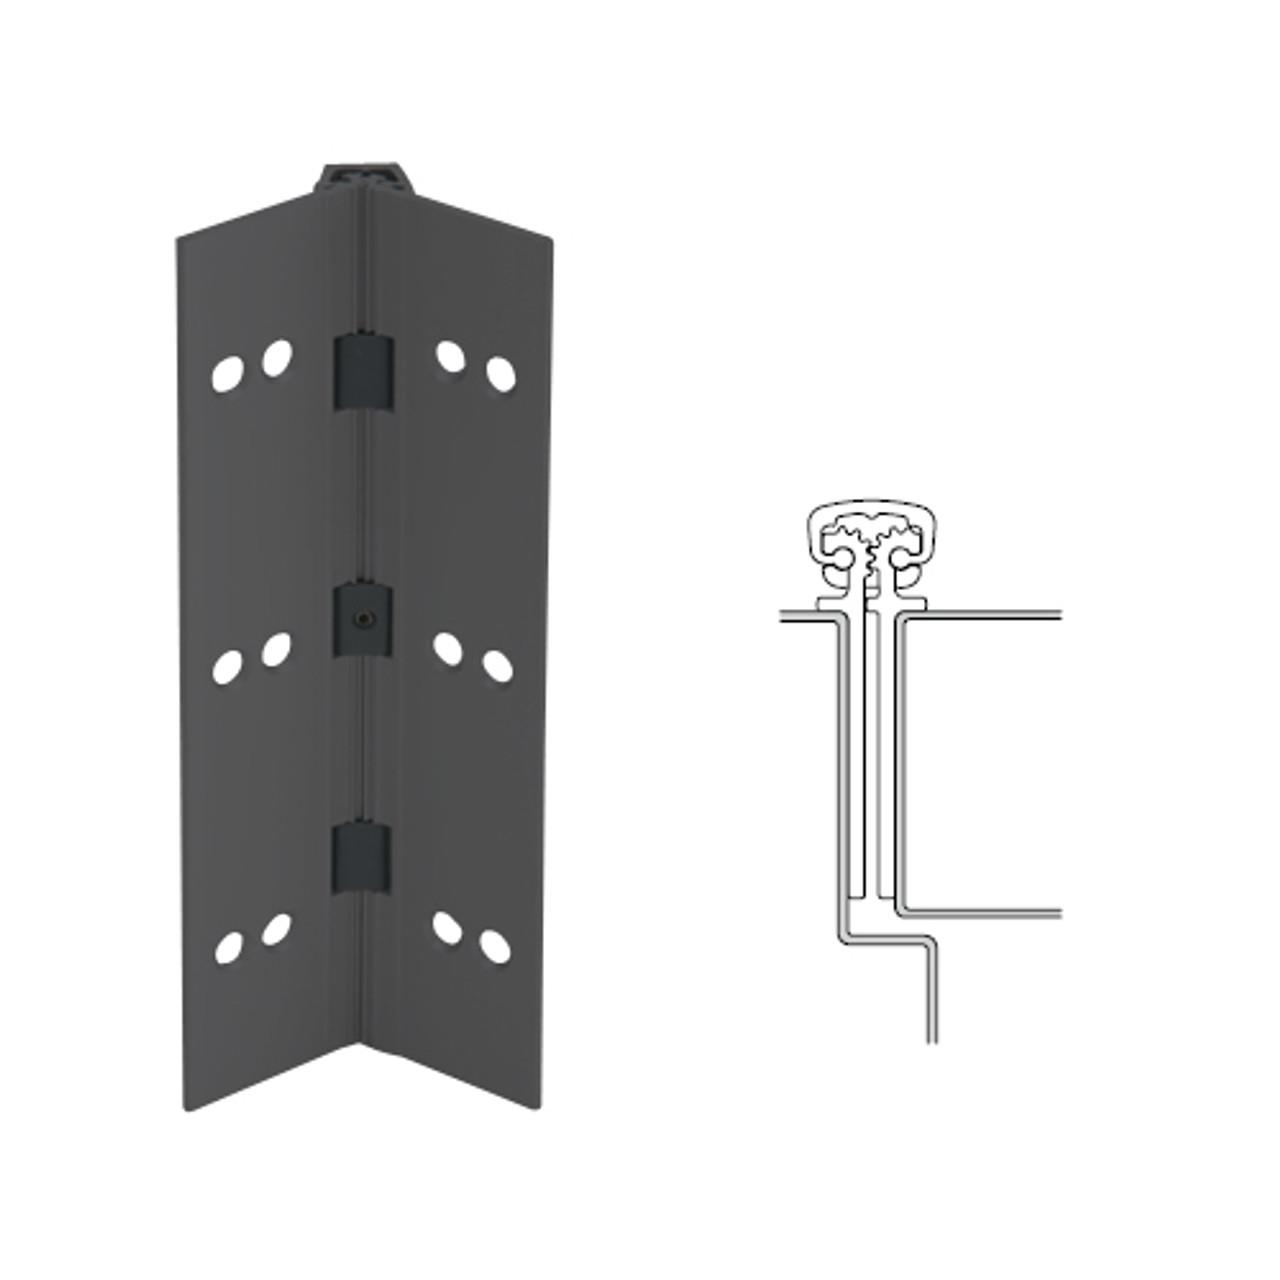 027XY-315AN-95-TF IVES Full Mortise Continuous Geared Hinges with Thread Forming Screws in Anodized Black